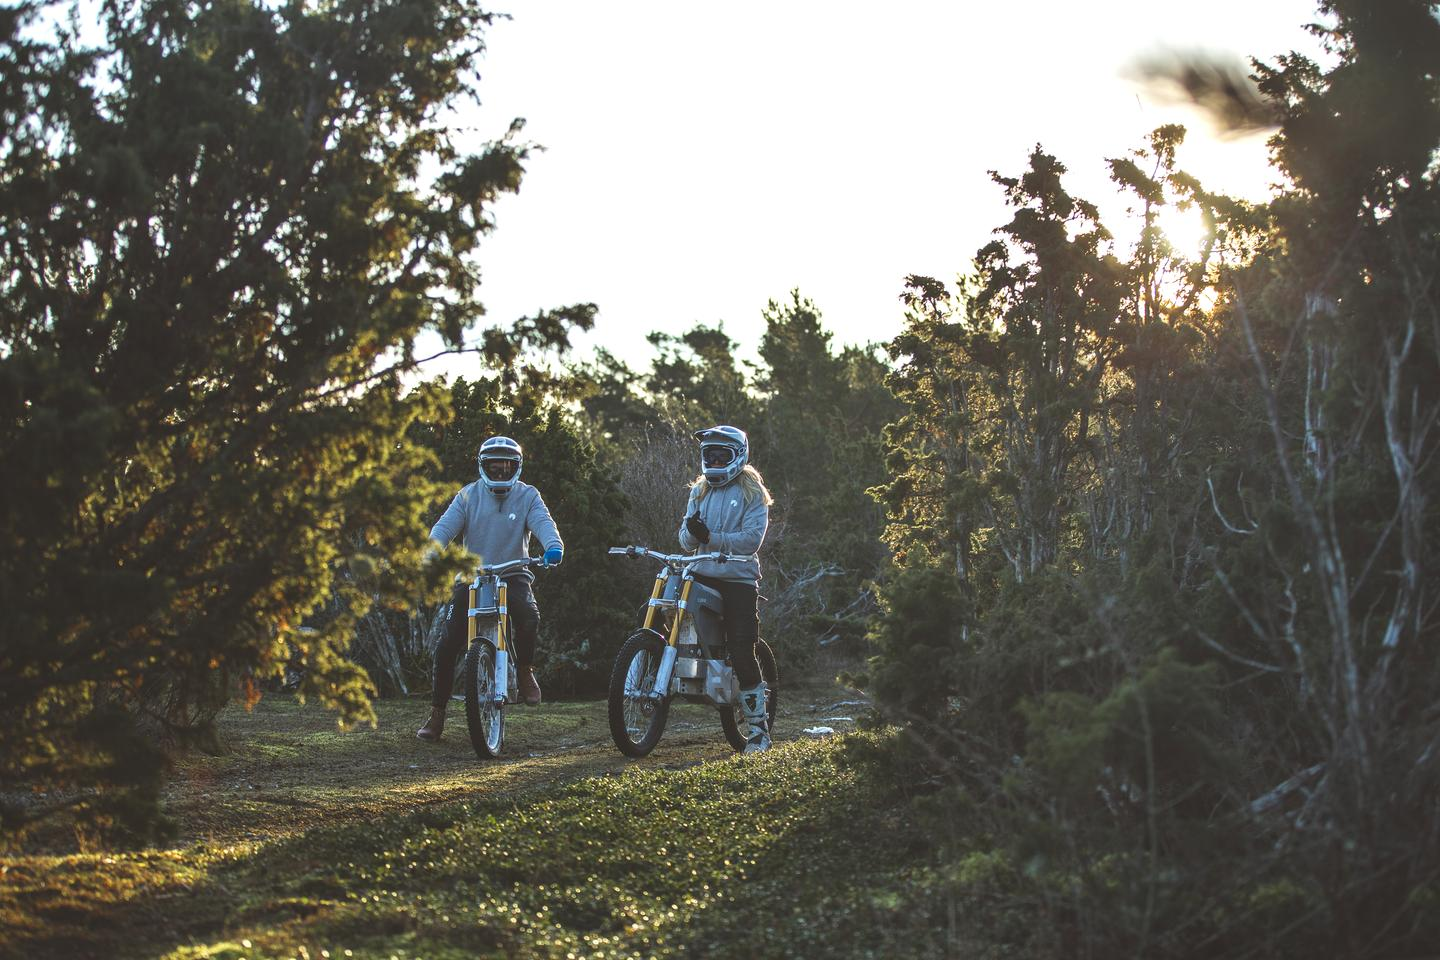 The Cake Kalk is built to provide a lighter, cleaner way of zipping aroundlocal dirt bike trails and parks